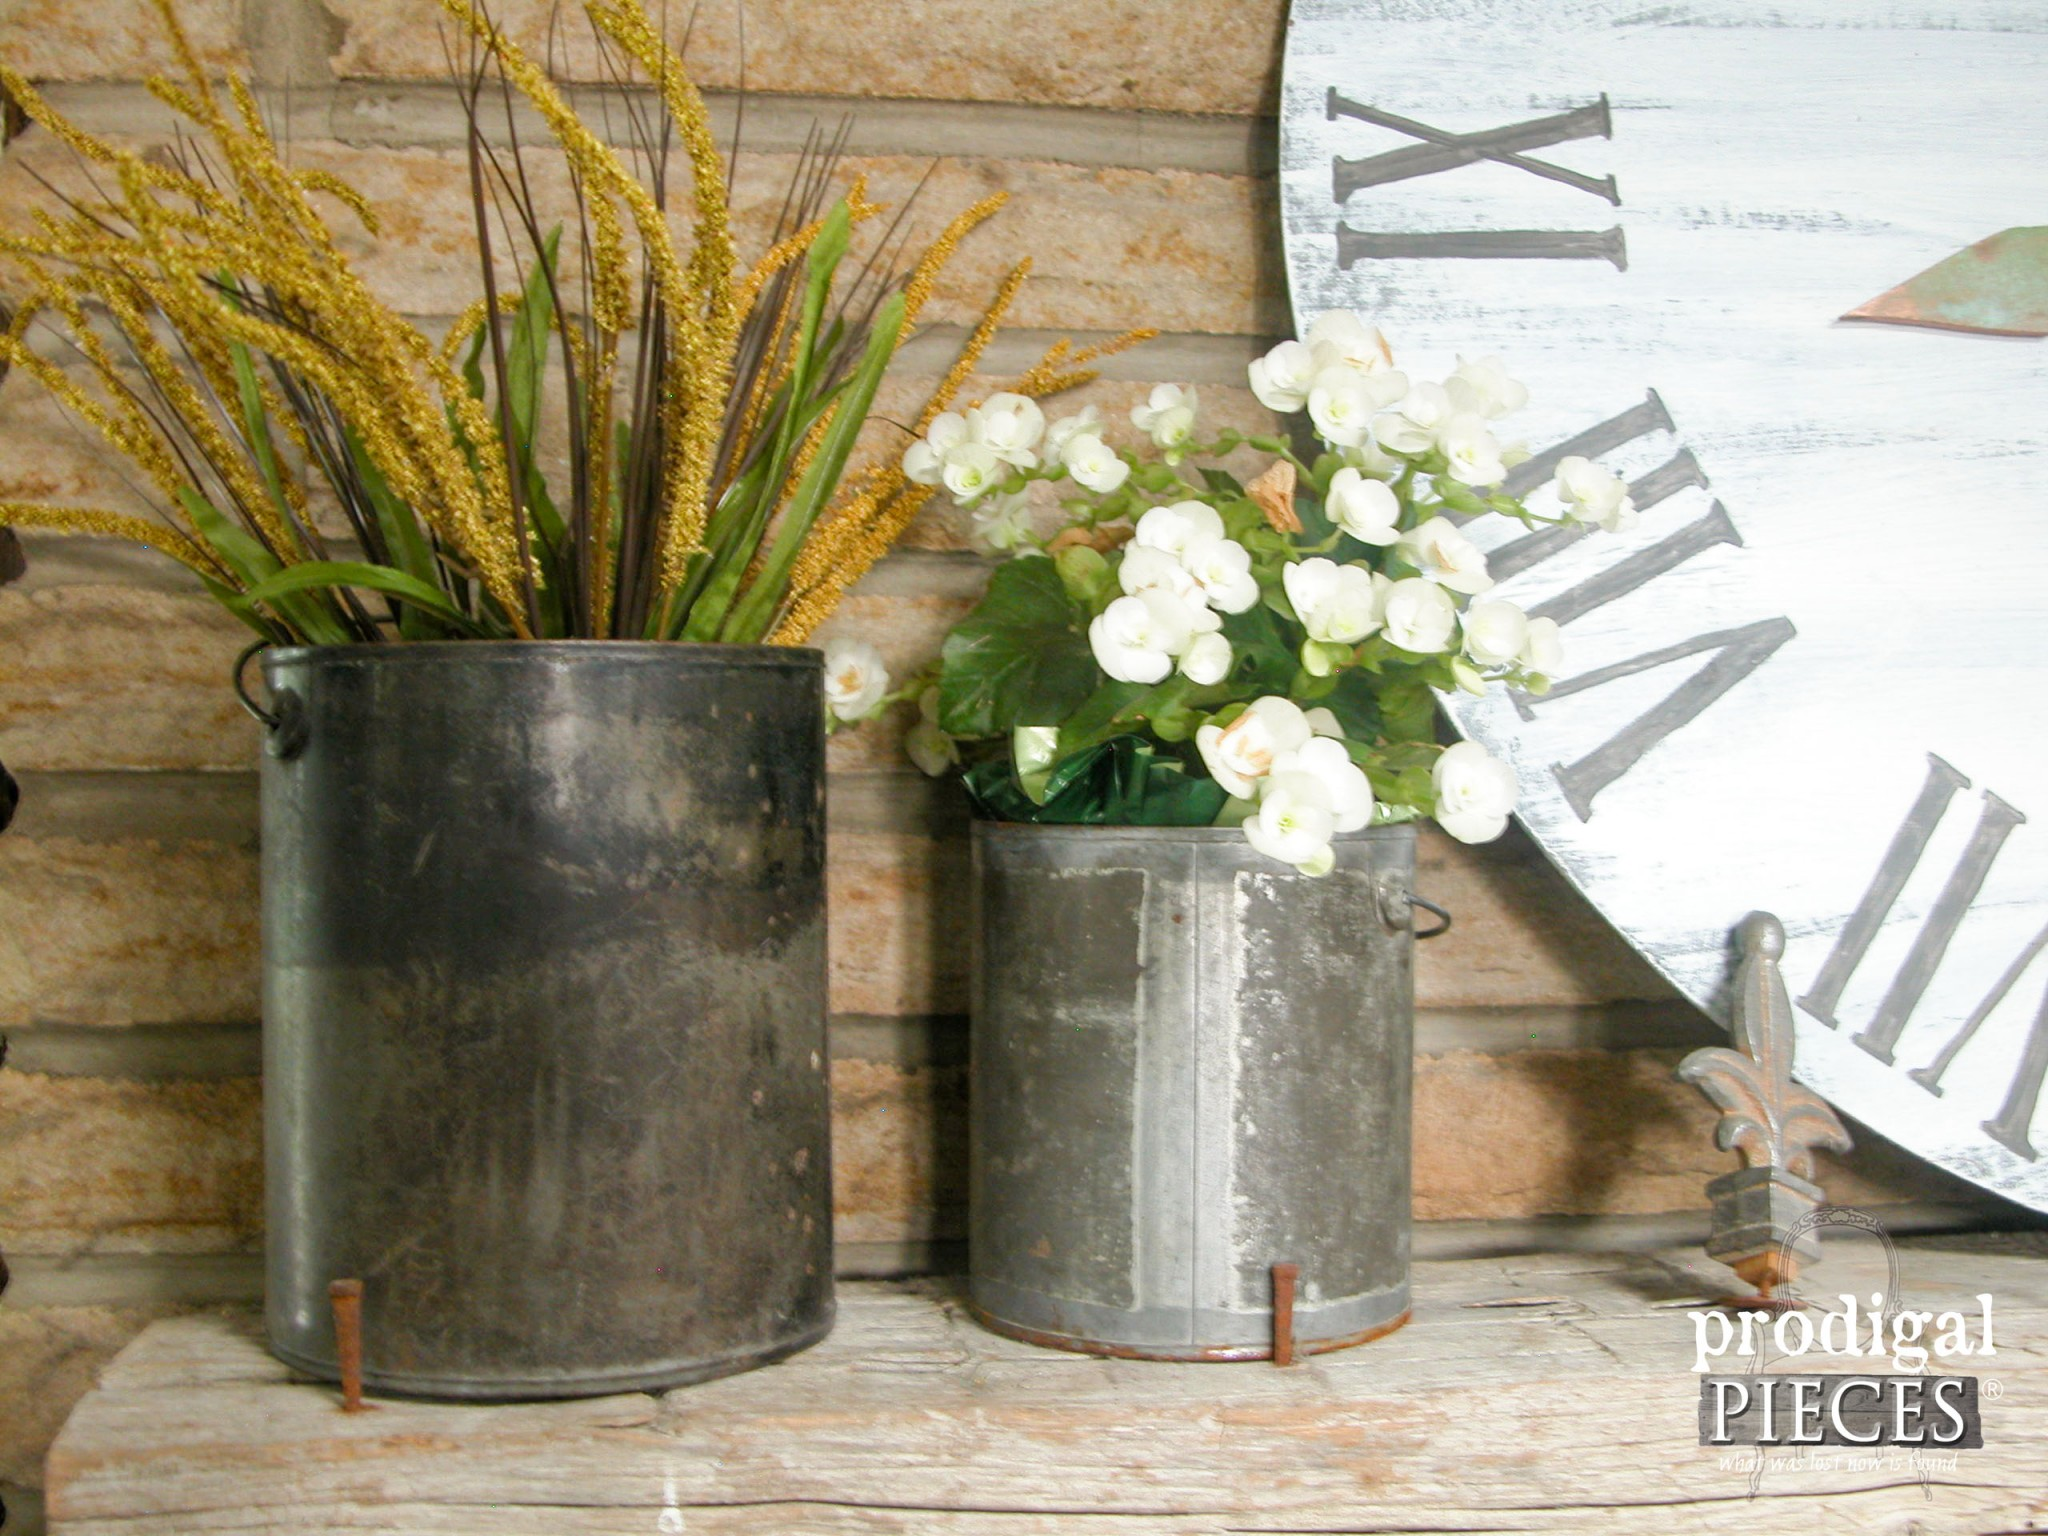 Old Paint Cans Make Perfect Rustic Planters | Prodigal Pieces | www.prodigalpieces.com